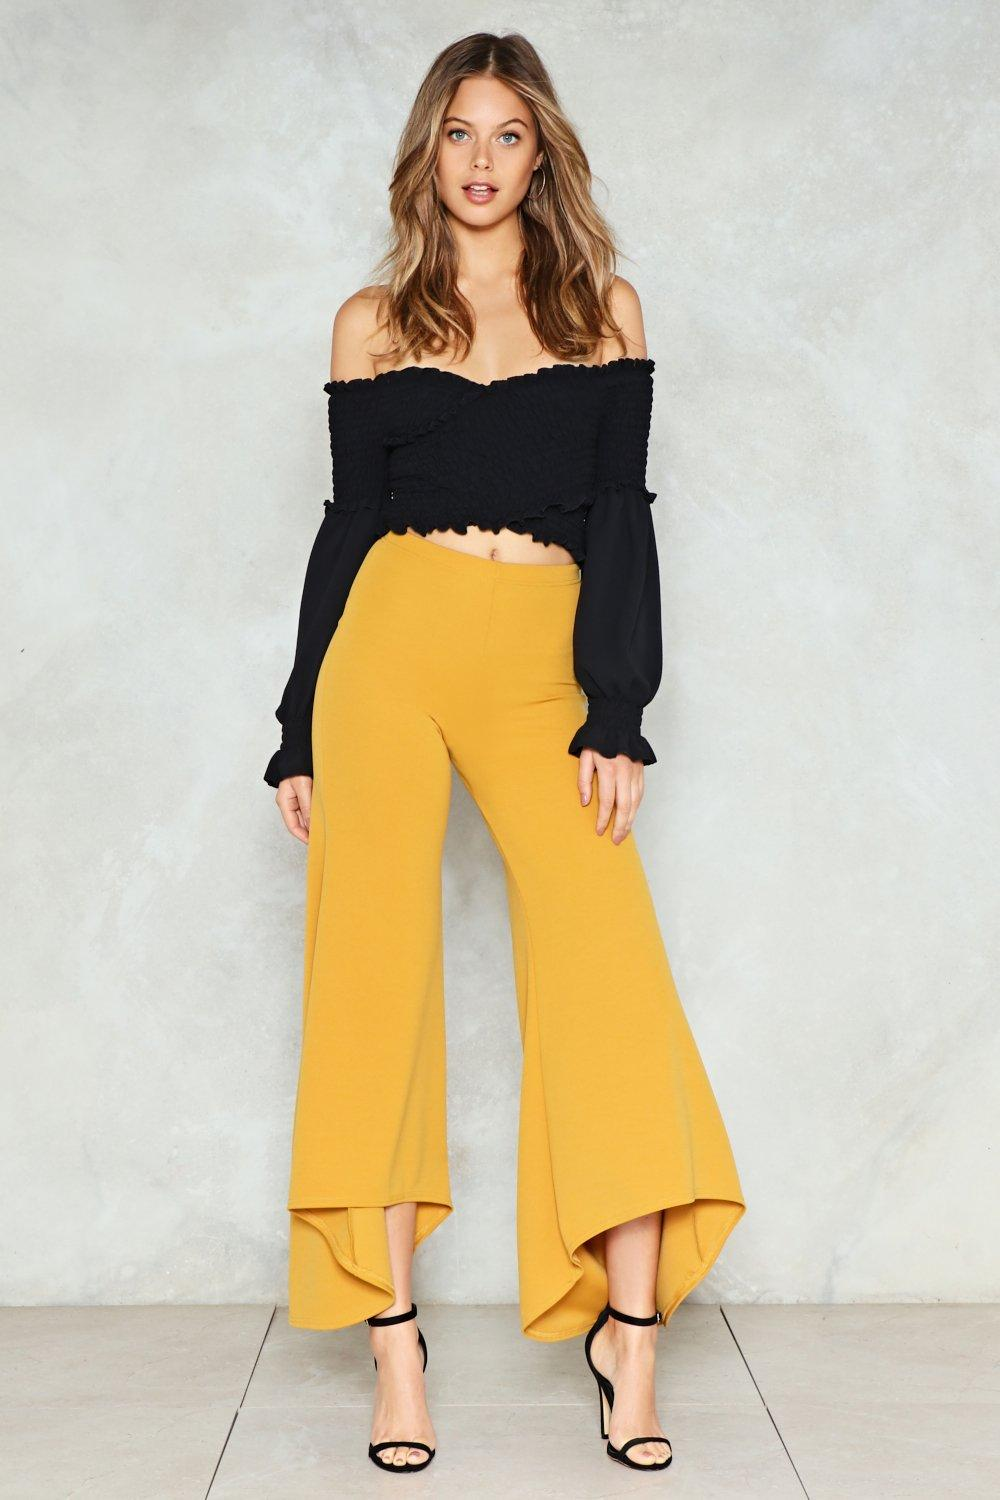 pics Off the Shoulder and Off the Hook: 15 Affordable Pieces That Ace This Mega-Trend